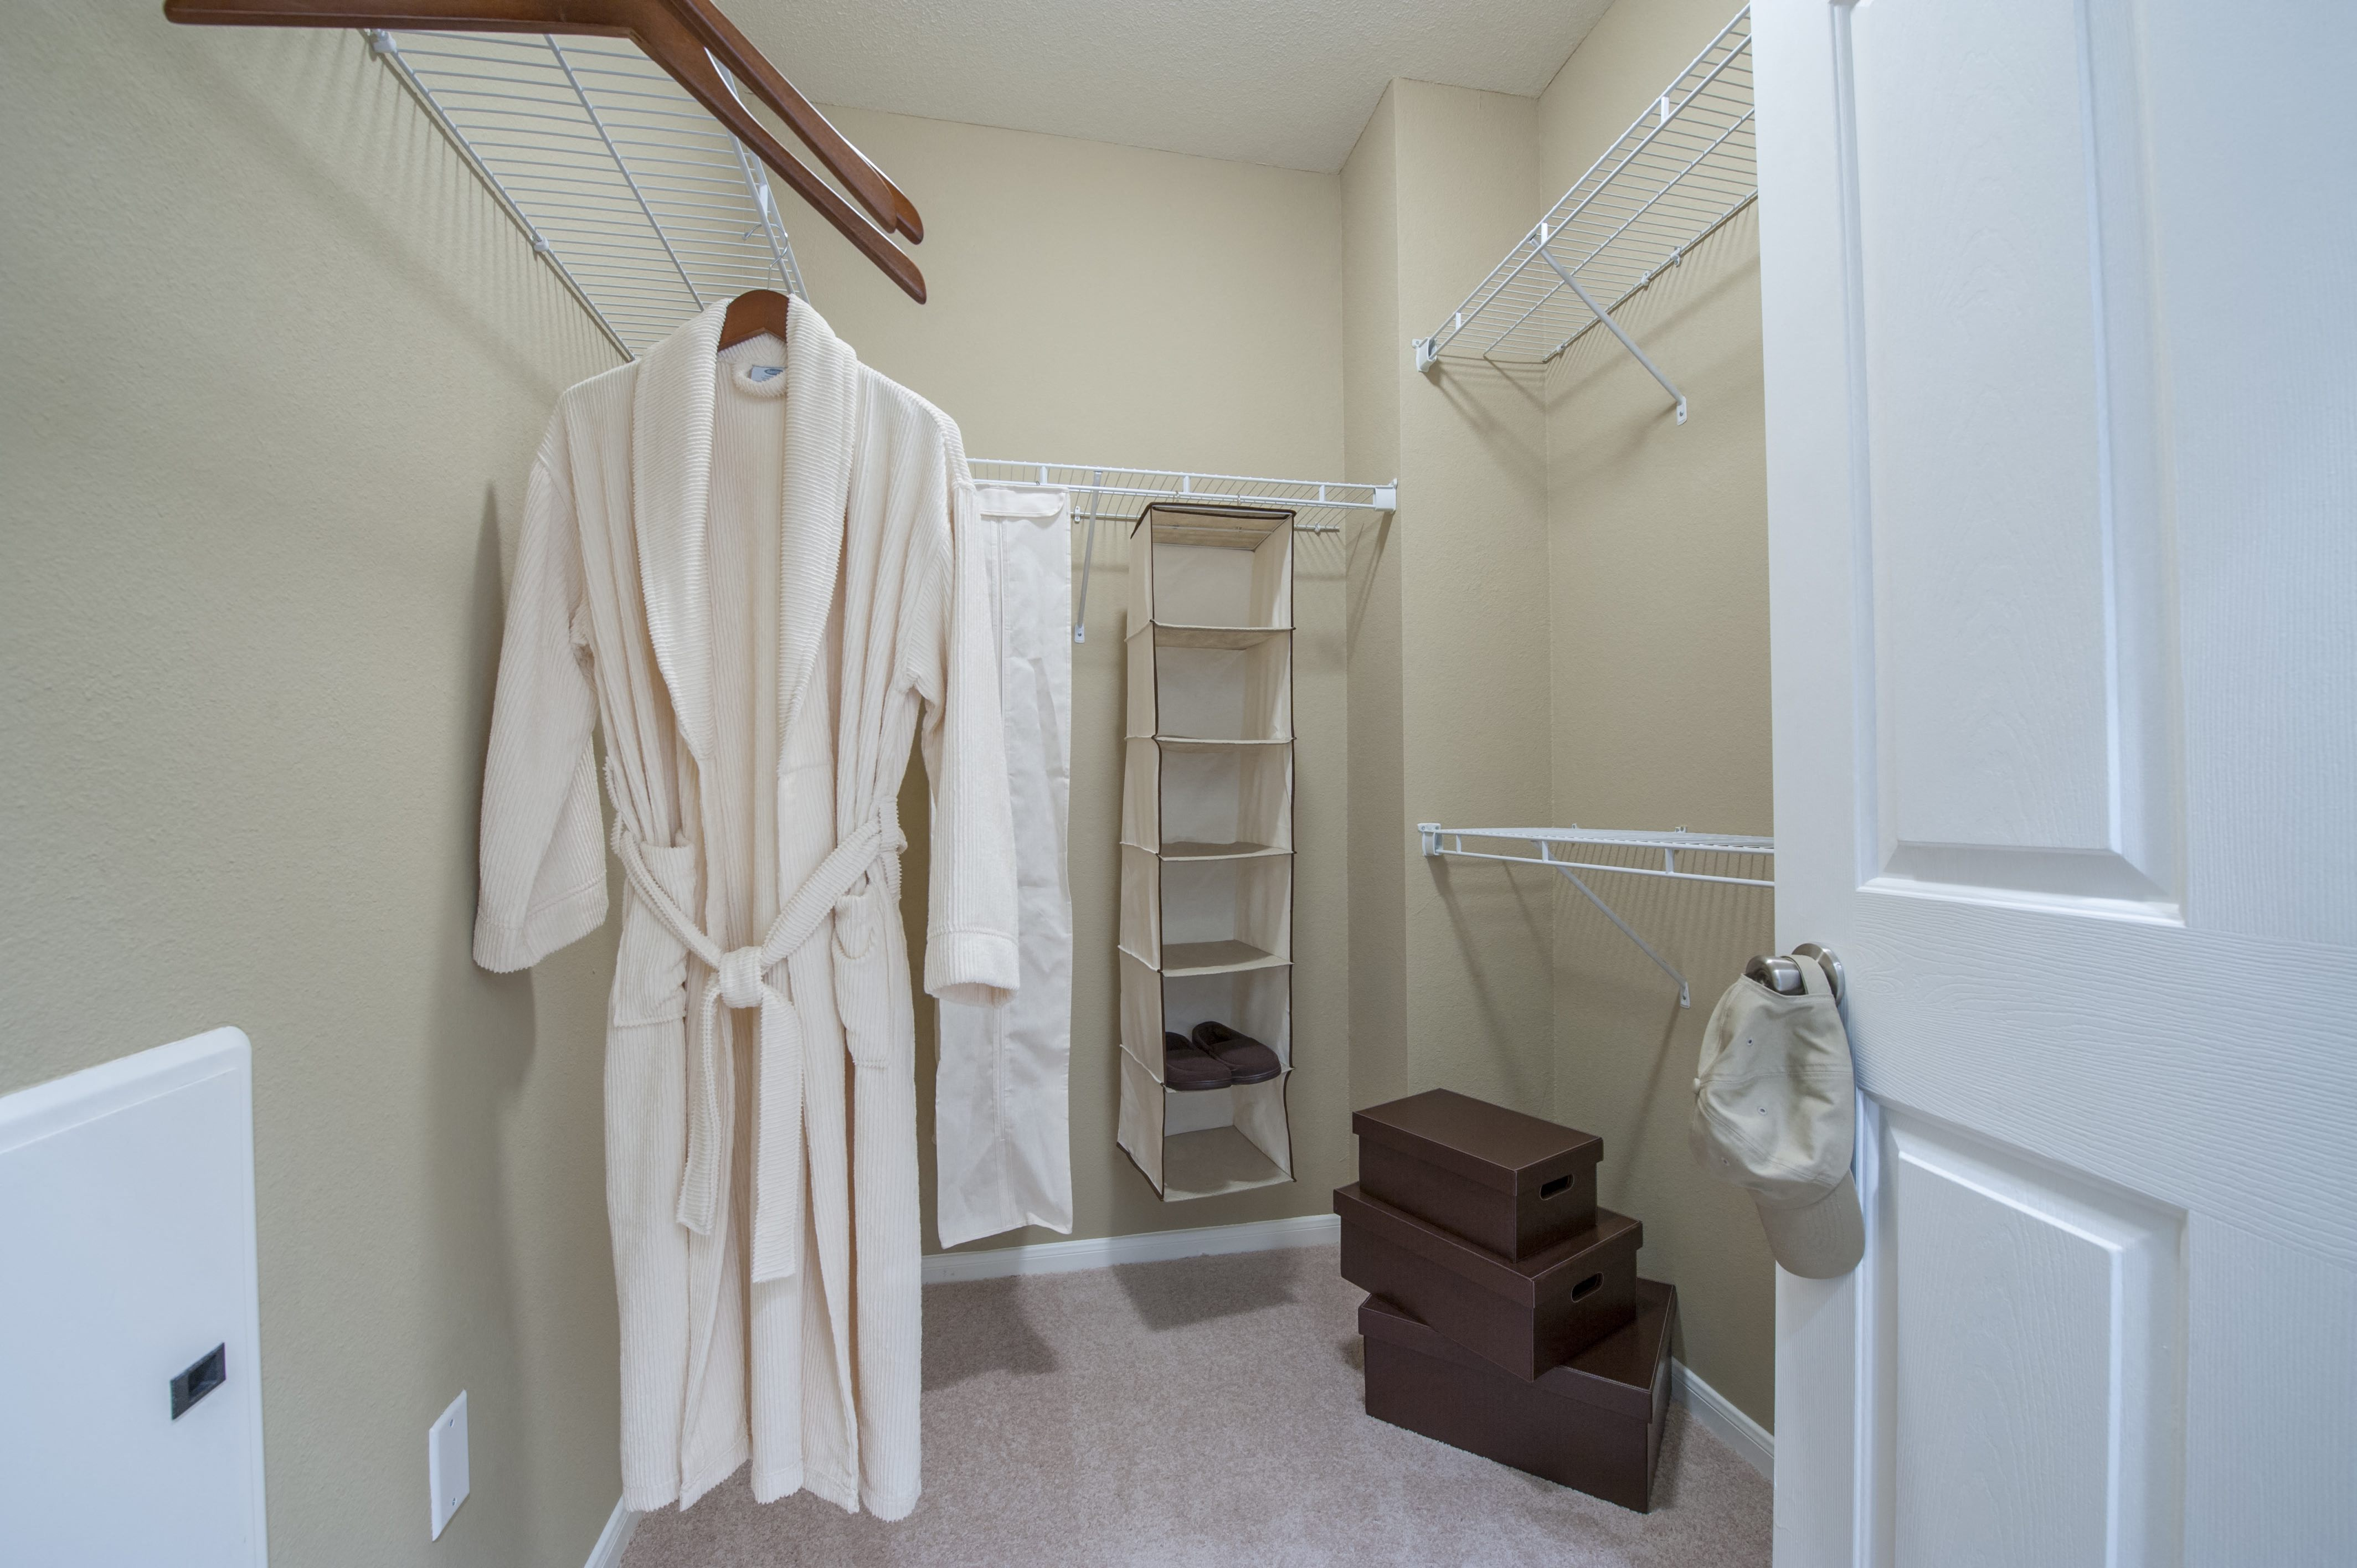 Generous Walk-In Closets With Shelving at Century South Shore, Texas